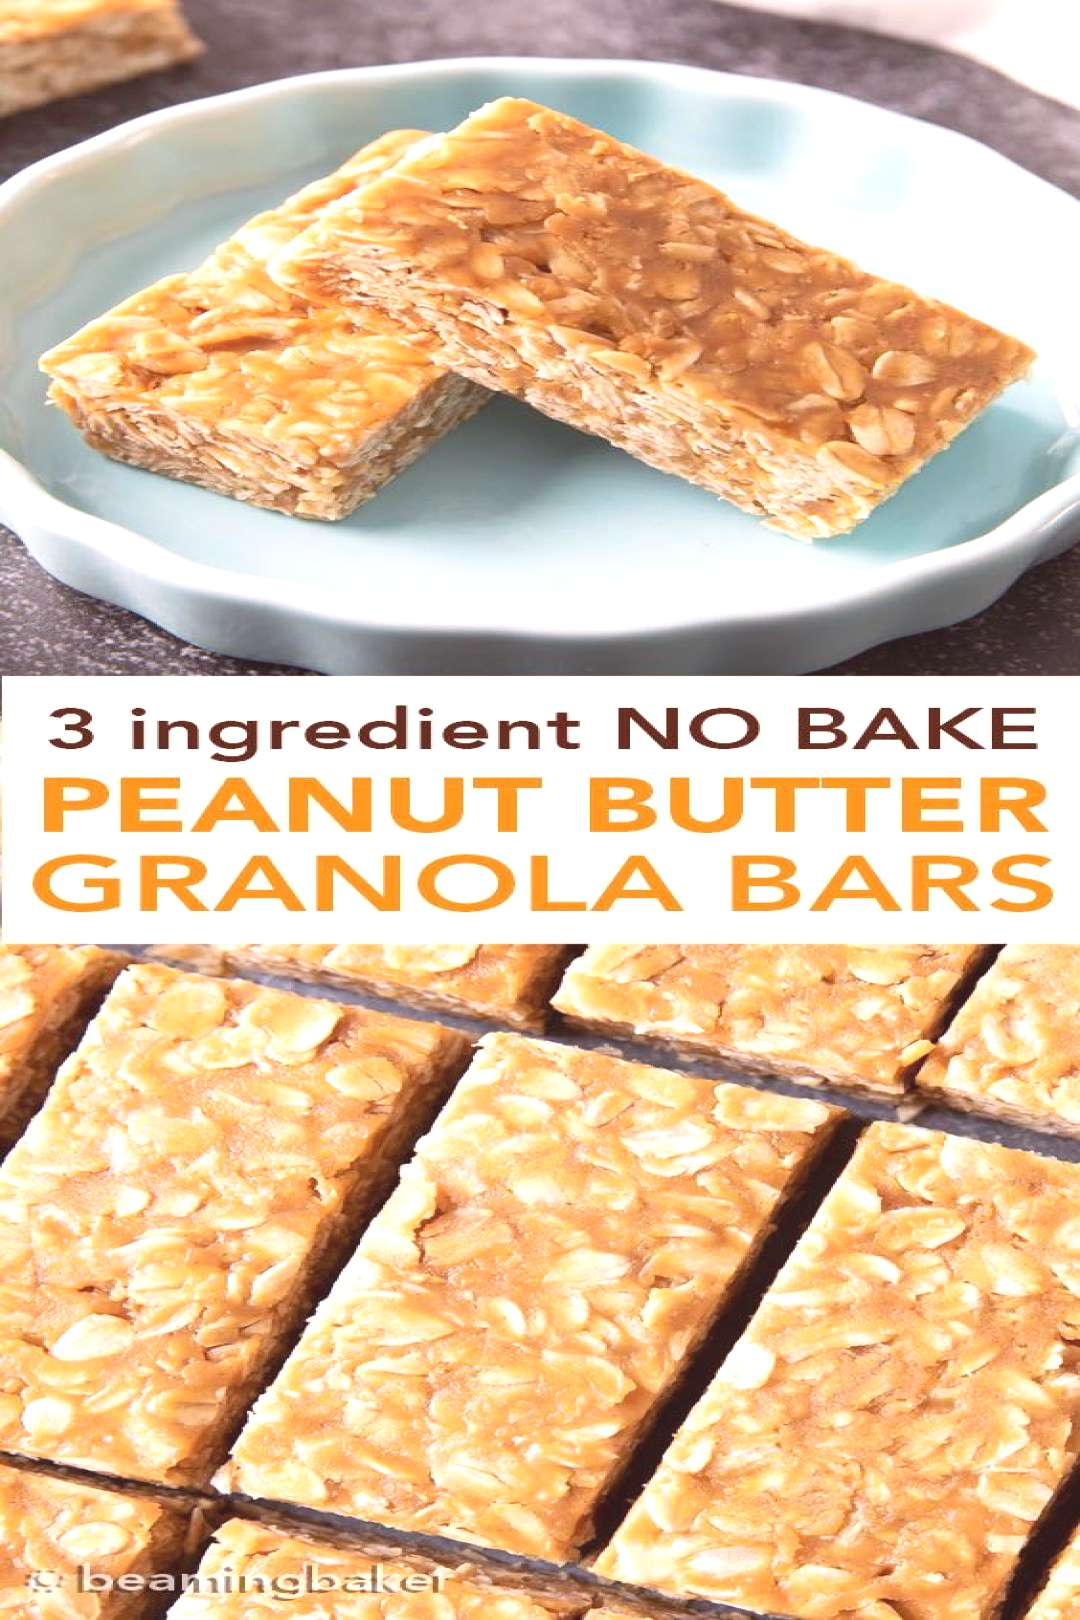 3 Ingredient No Bake Peanut Butter Granola Bars